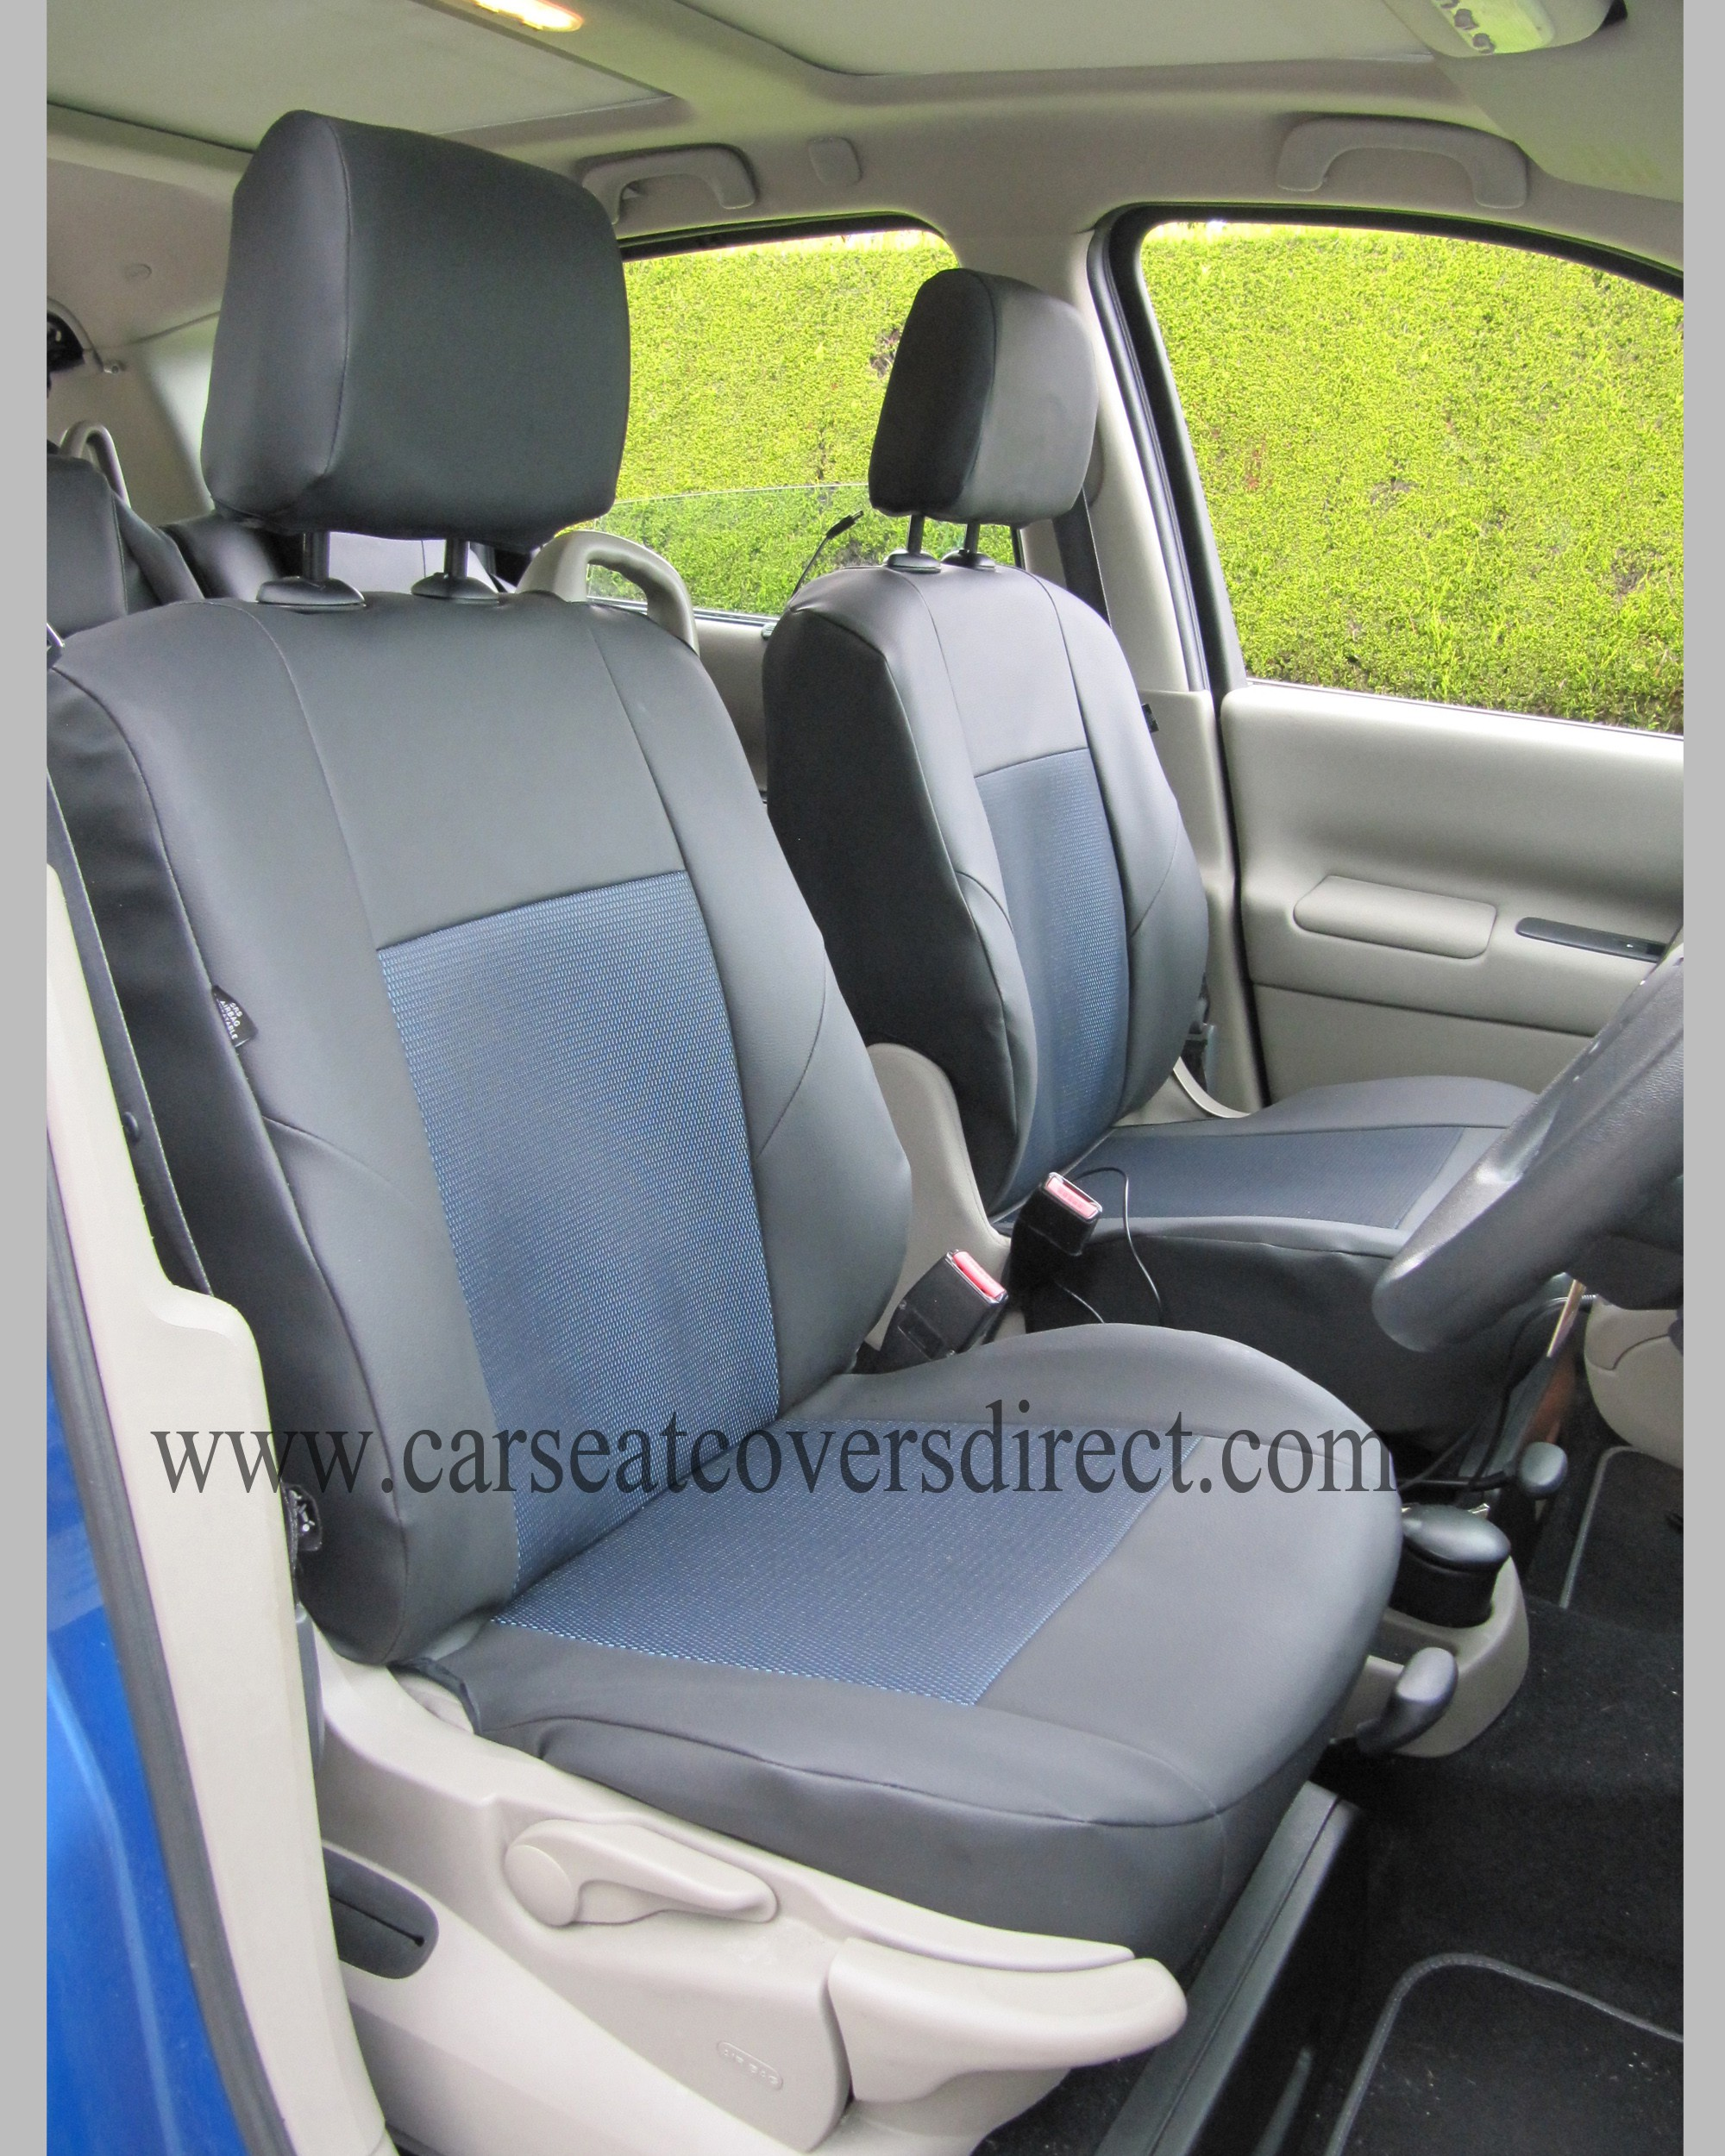 Custom Renault Scenic Seat Covers Car Seat Covers Direct